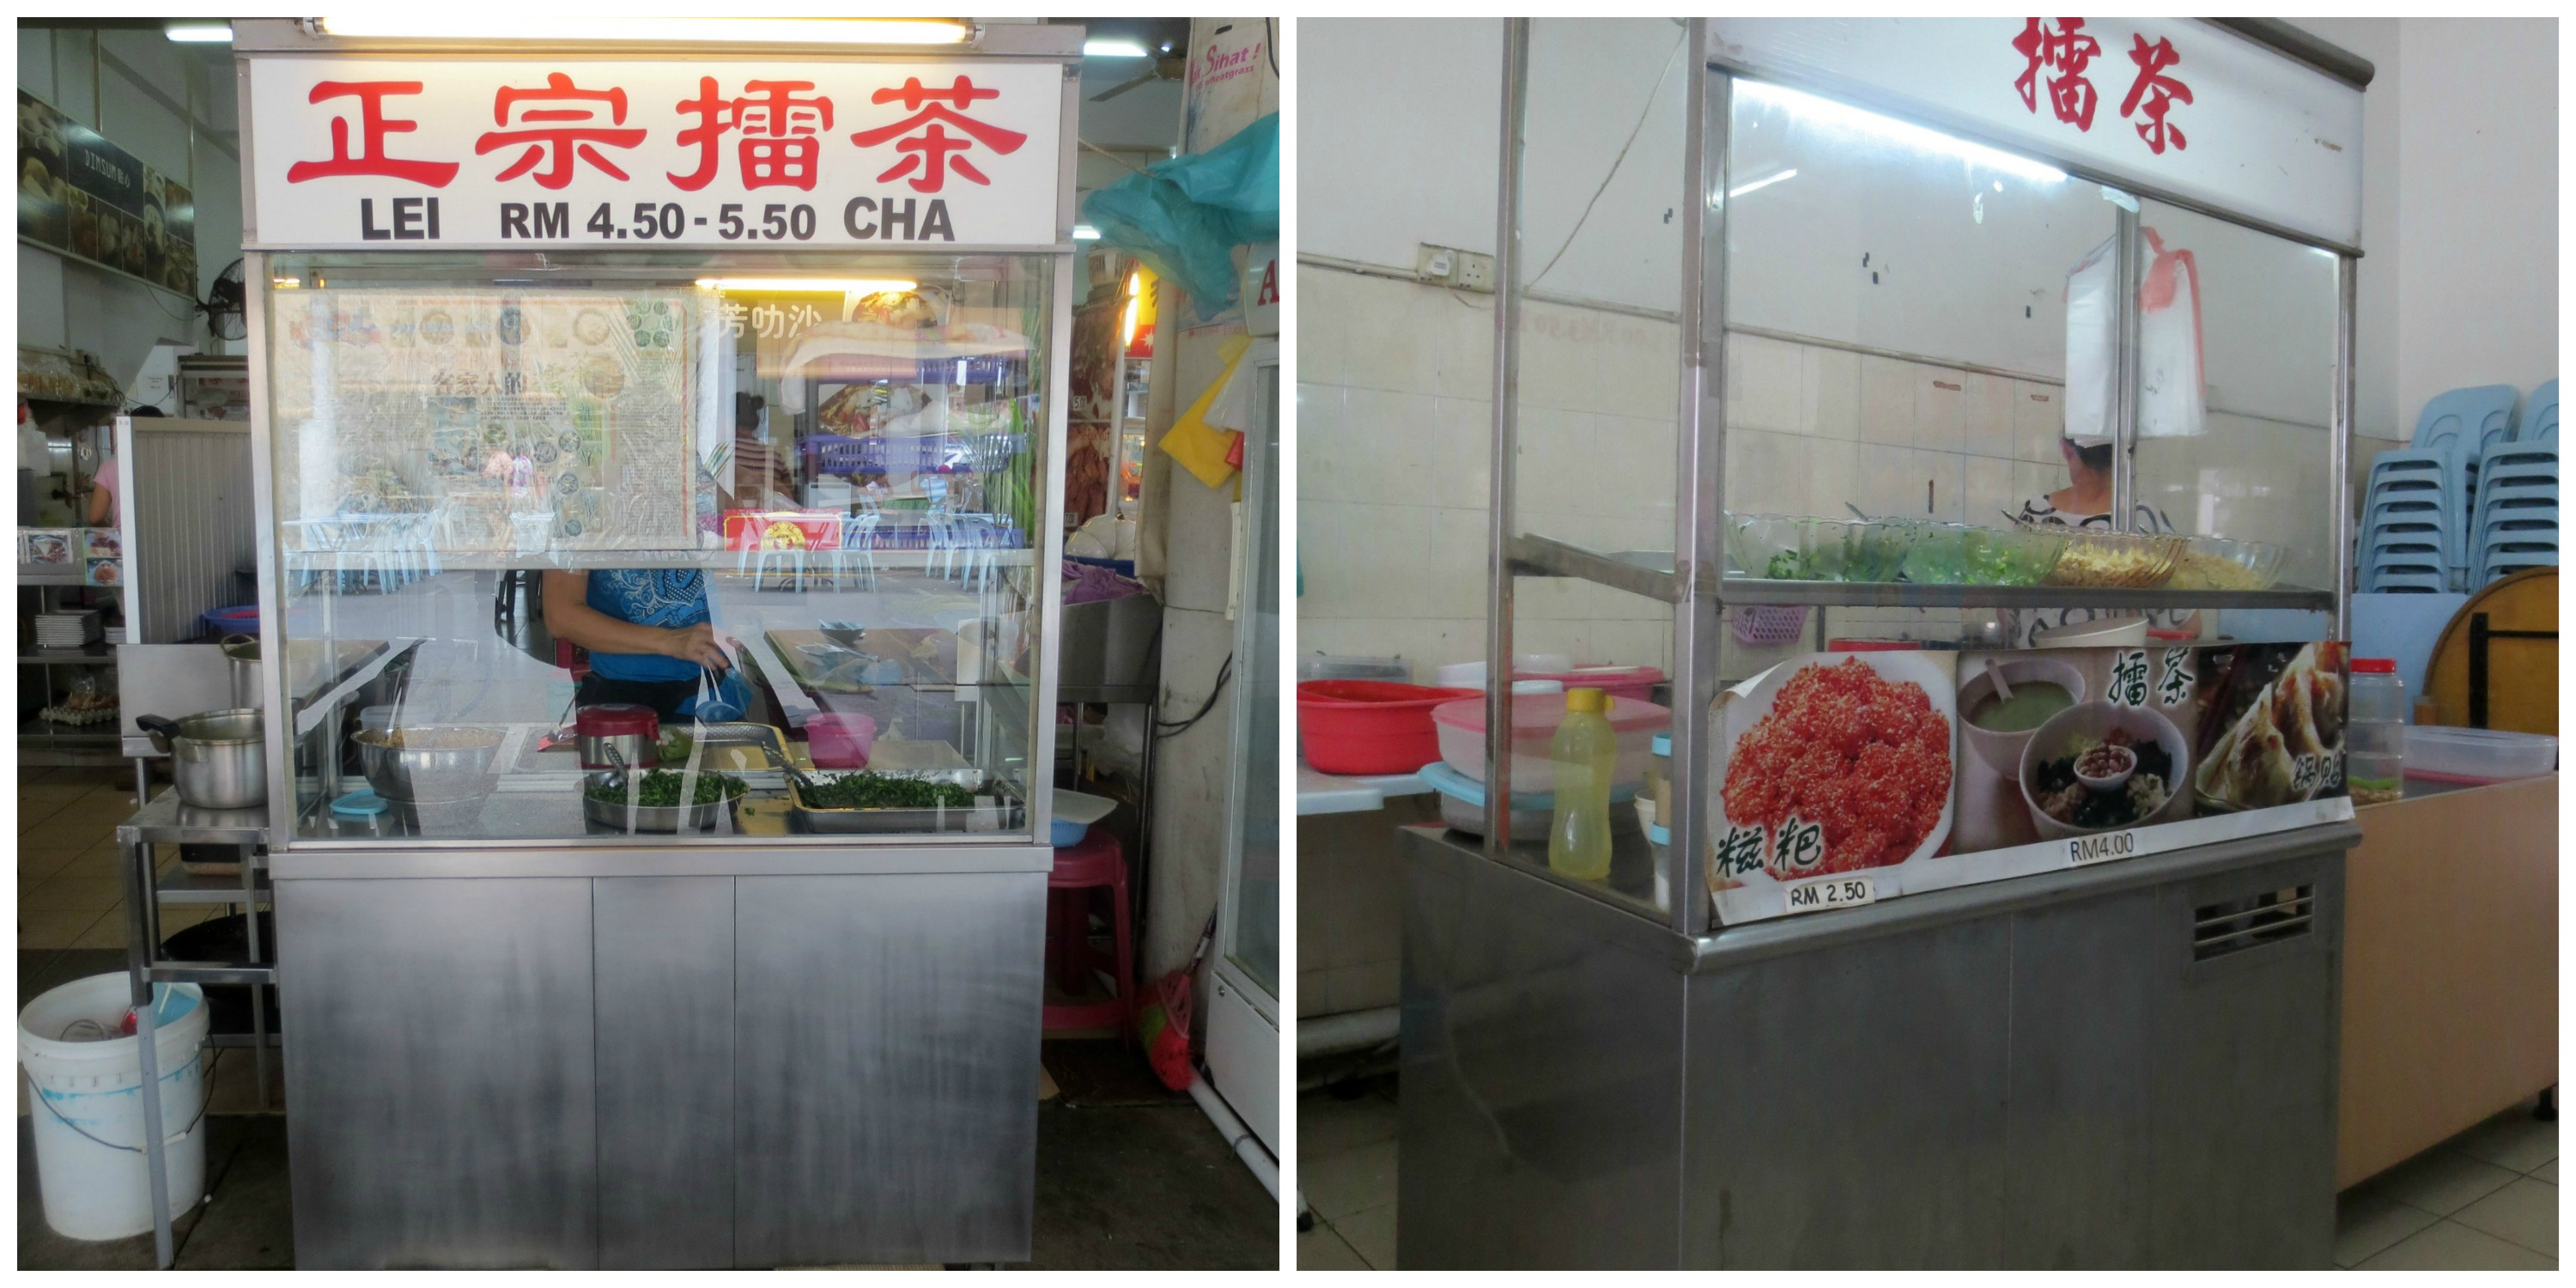 There are quite a number of Lei Cha stores in Kuching City.